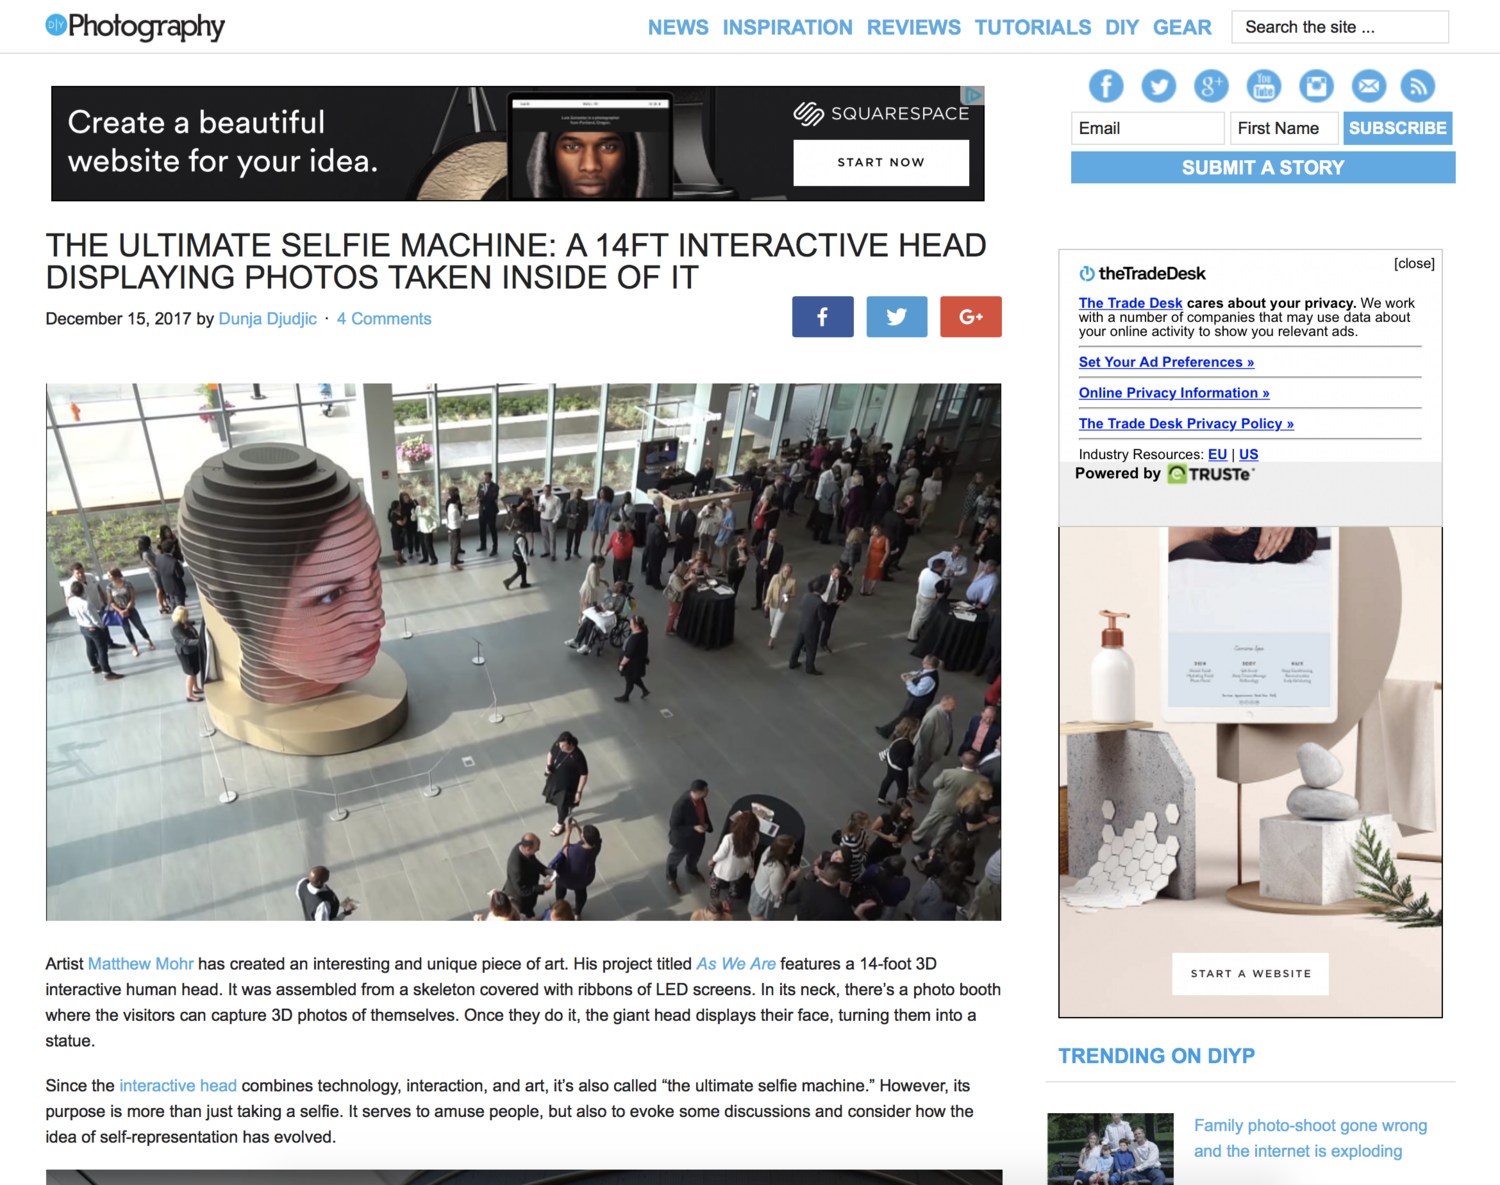 The ultimate selfie machine: a 14ft interactive head displaying